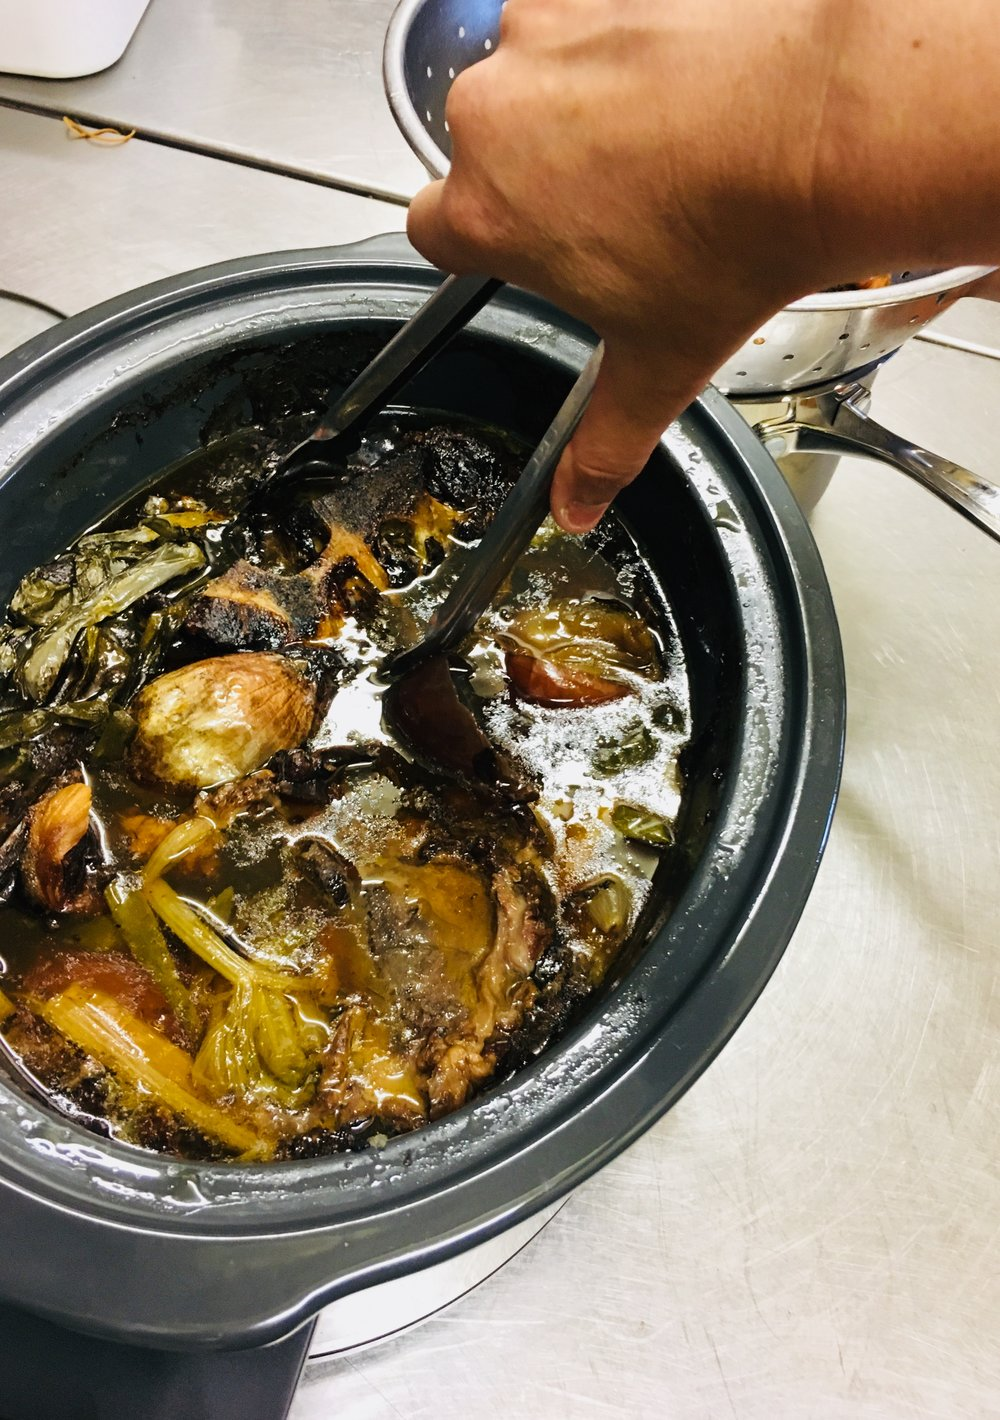 Avoid splatter by removing bigger bones first (tong's are my best friend)